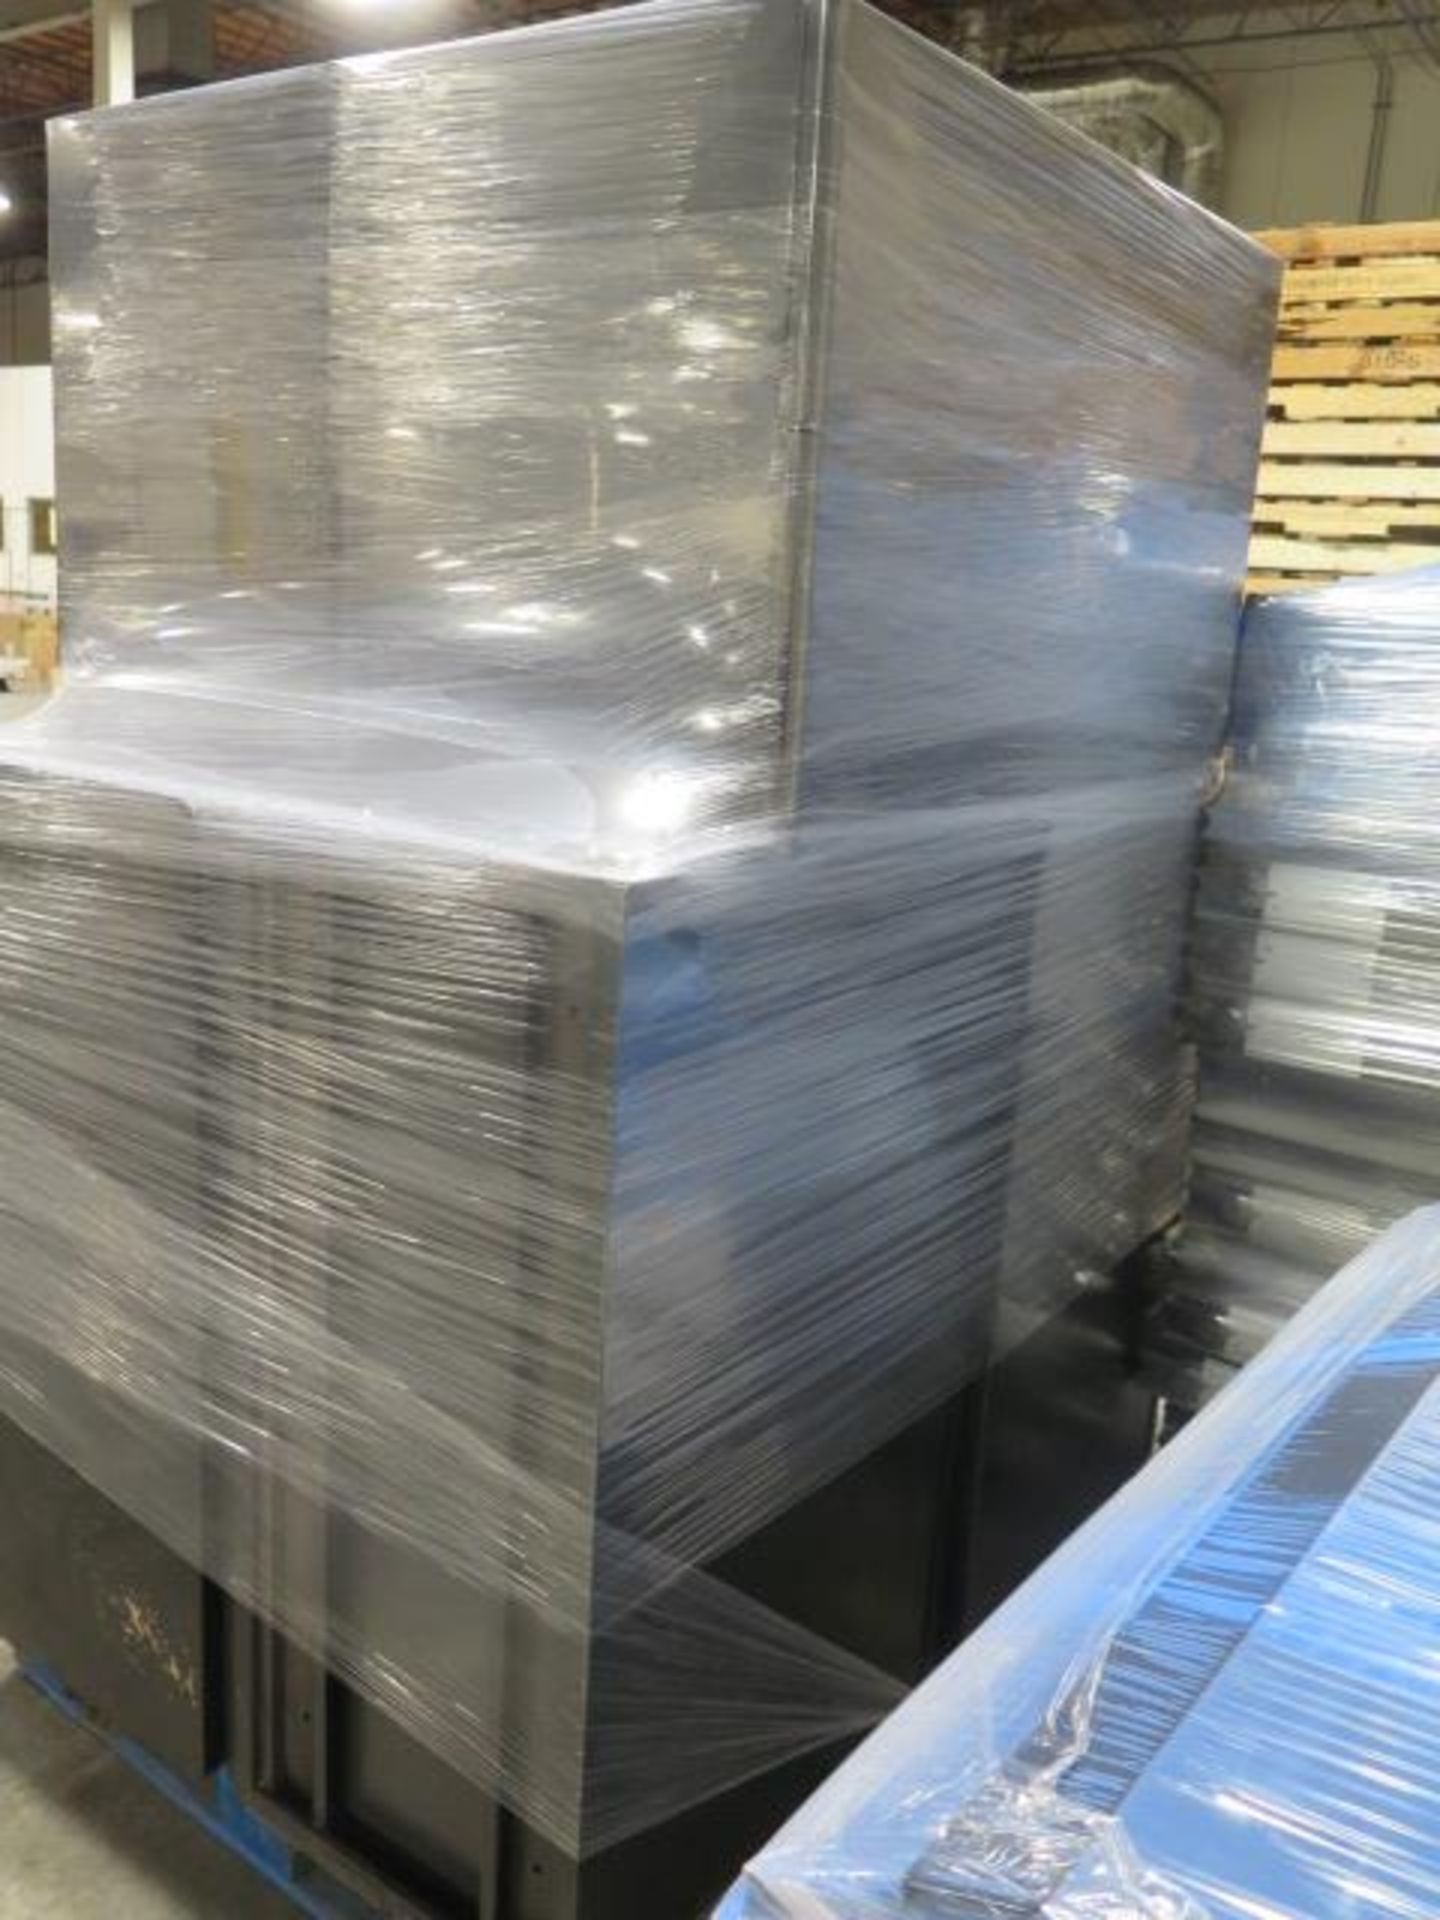 Large Quantity of Office Partitions, Desks, File Cabinets and Storage Cabinets (SOLD AS-IS - NO WARA - Image 7 of 24